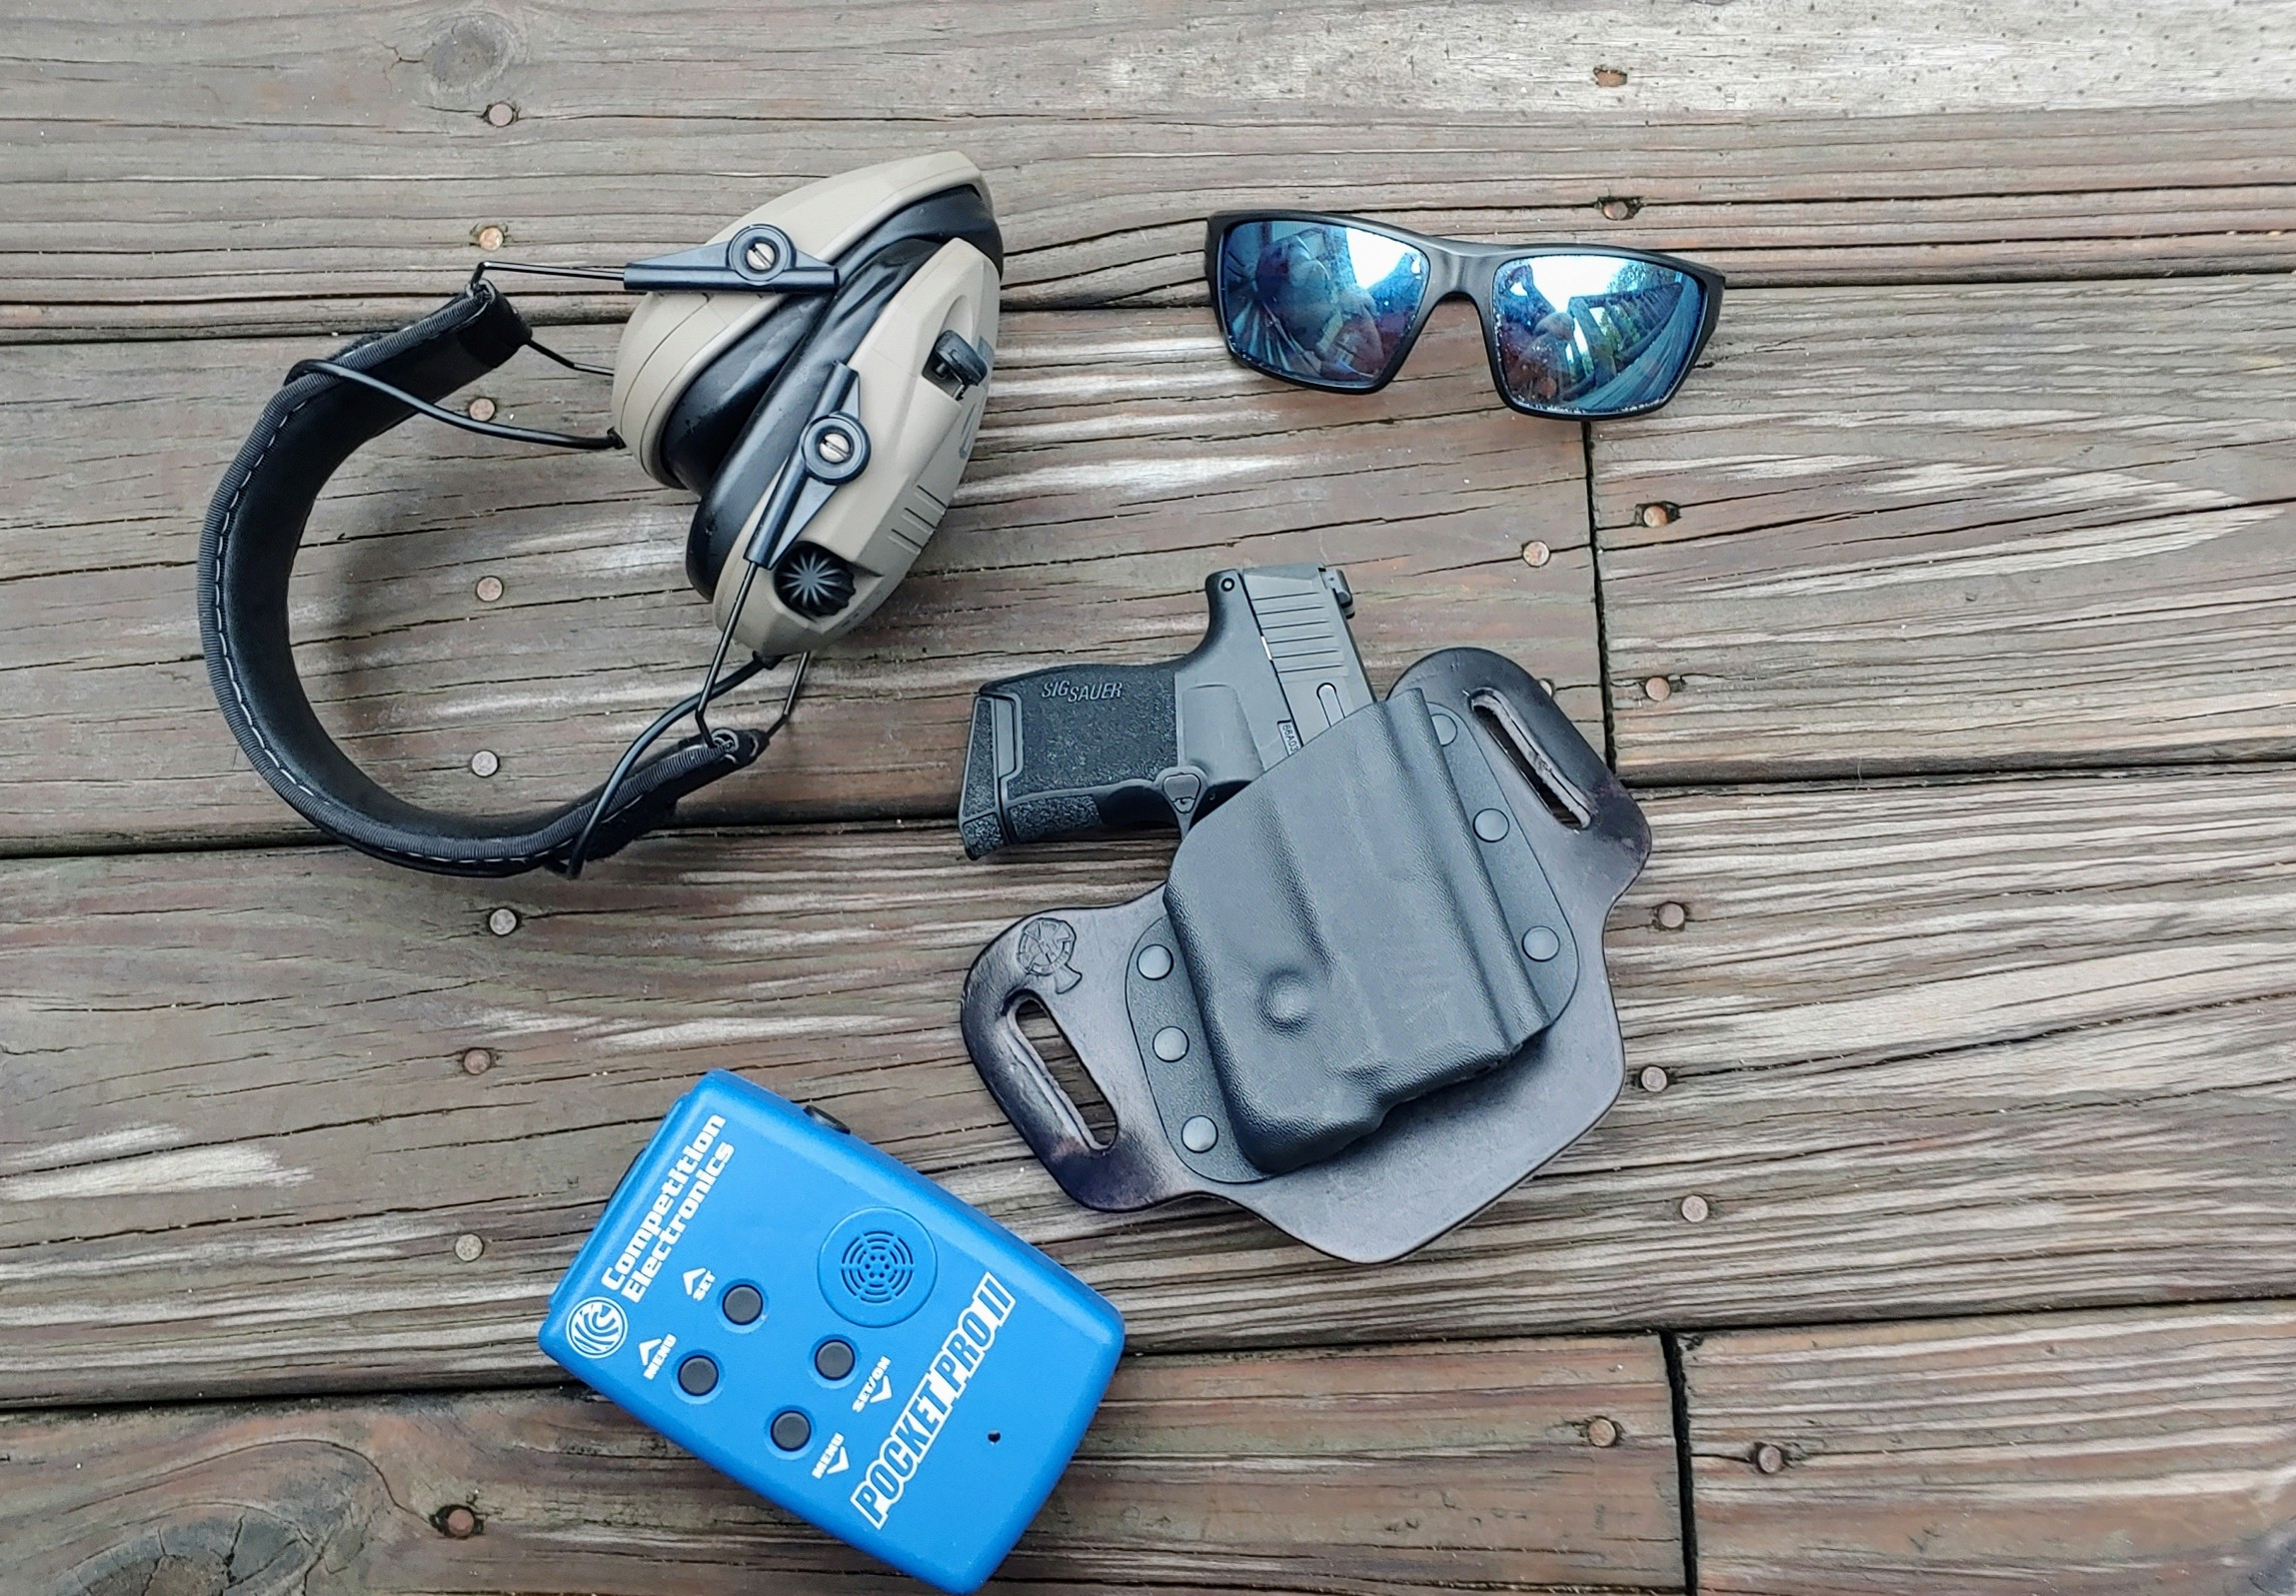 concealed carrier, responsibly armed, IWB, concealed carry, holster, holsters, concealed carry holsters, most comfortable holster, crossbreed holsters, crossbreed, hybrid holsters, iwb holsters